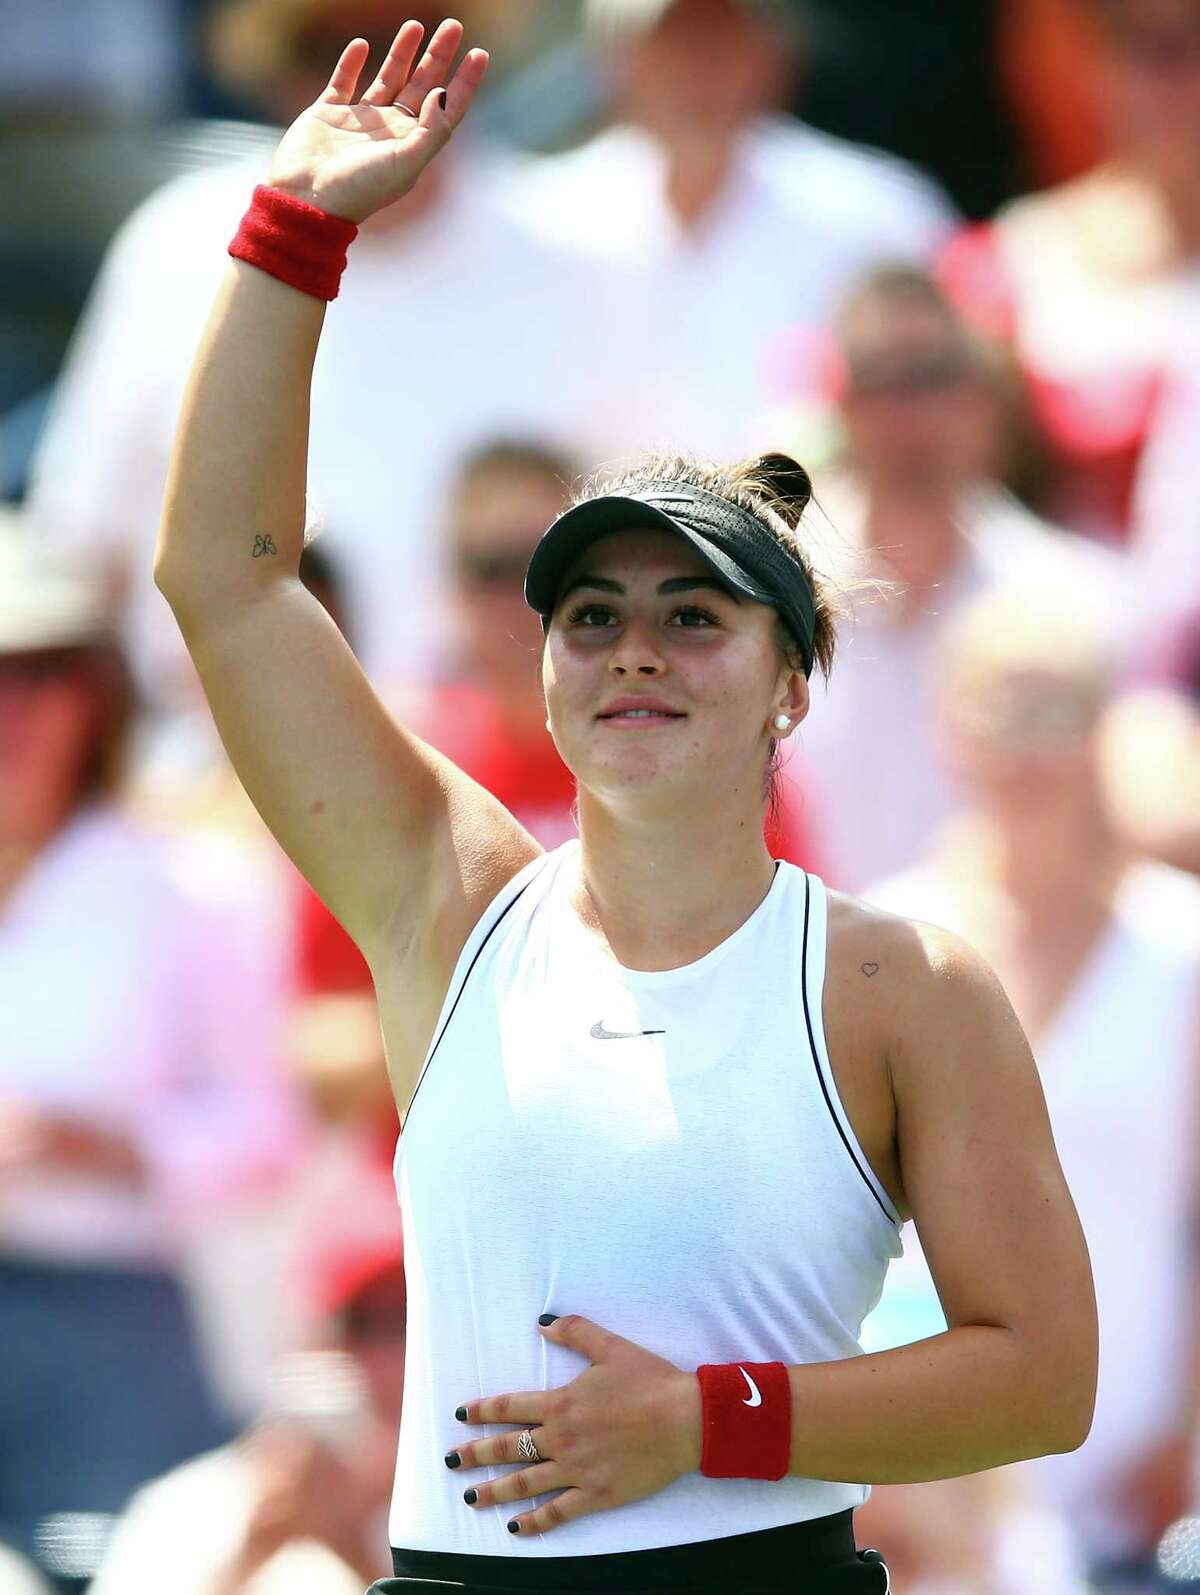 TORONTO, ON - AUGUST 11: Bianca Andreescu of Canada waves to the crowd following her victory over Serena Williams of the United States in the final match on Day 9 of the Rogers Cup at Aviva Centre on August 11, 2019 in Toronto, Canada. Williams withdrew from the match with a back injury. (Photo by Vaughn Ridley/Getty Images)